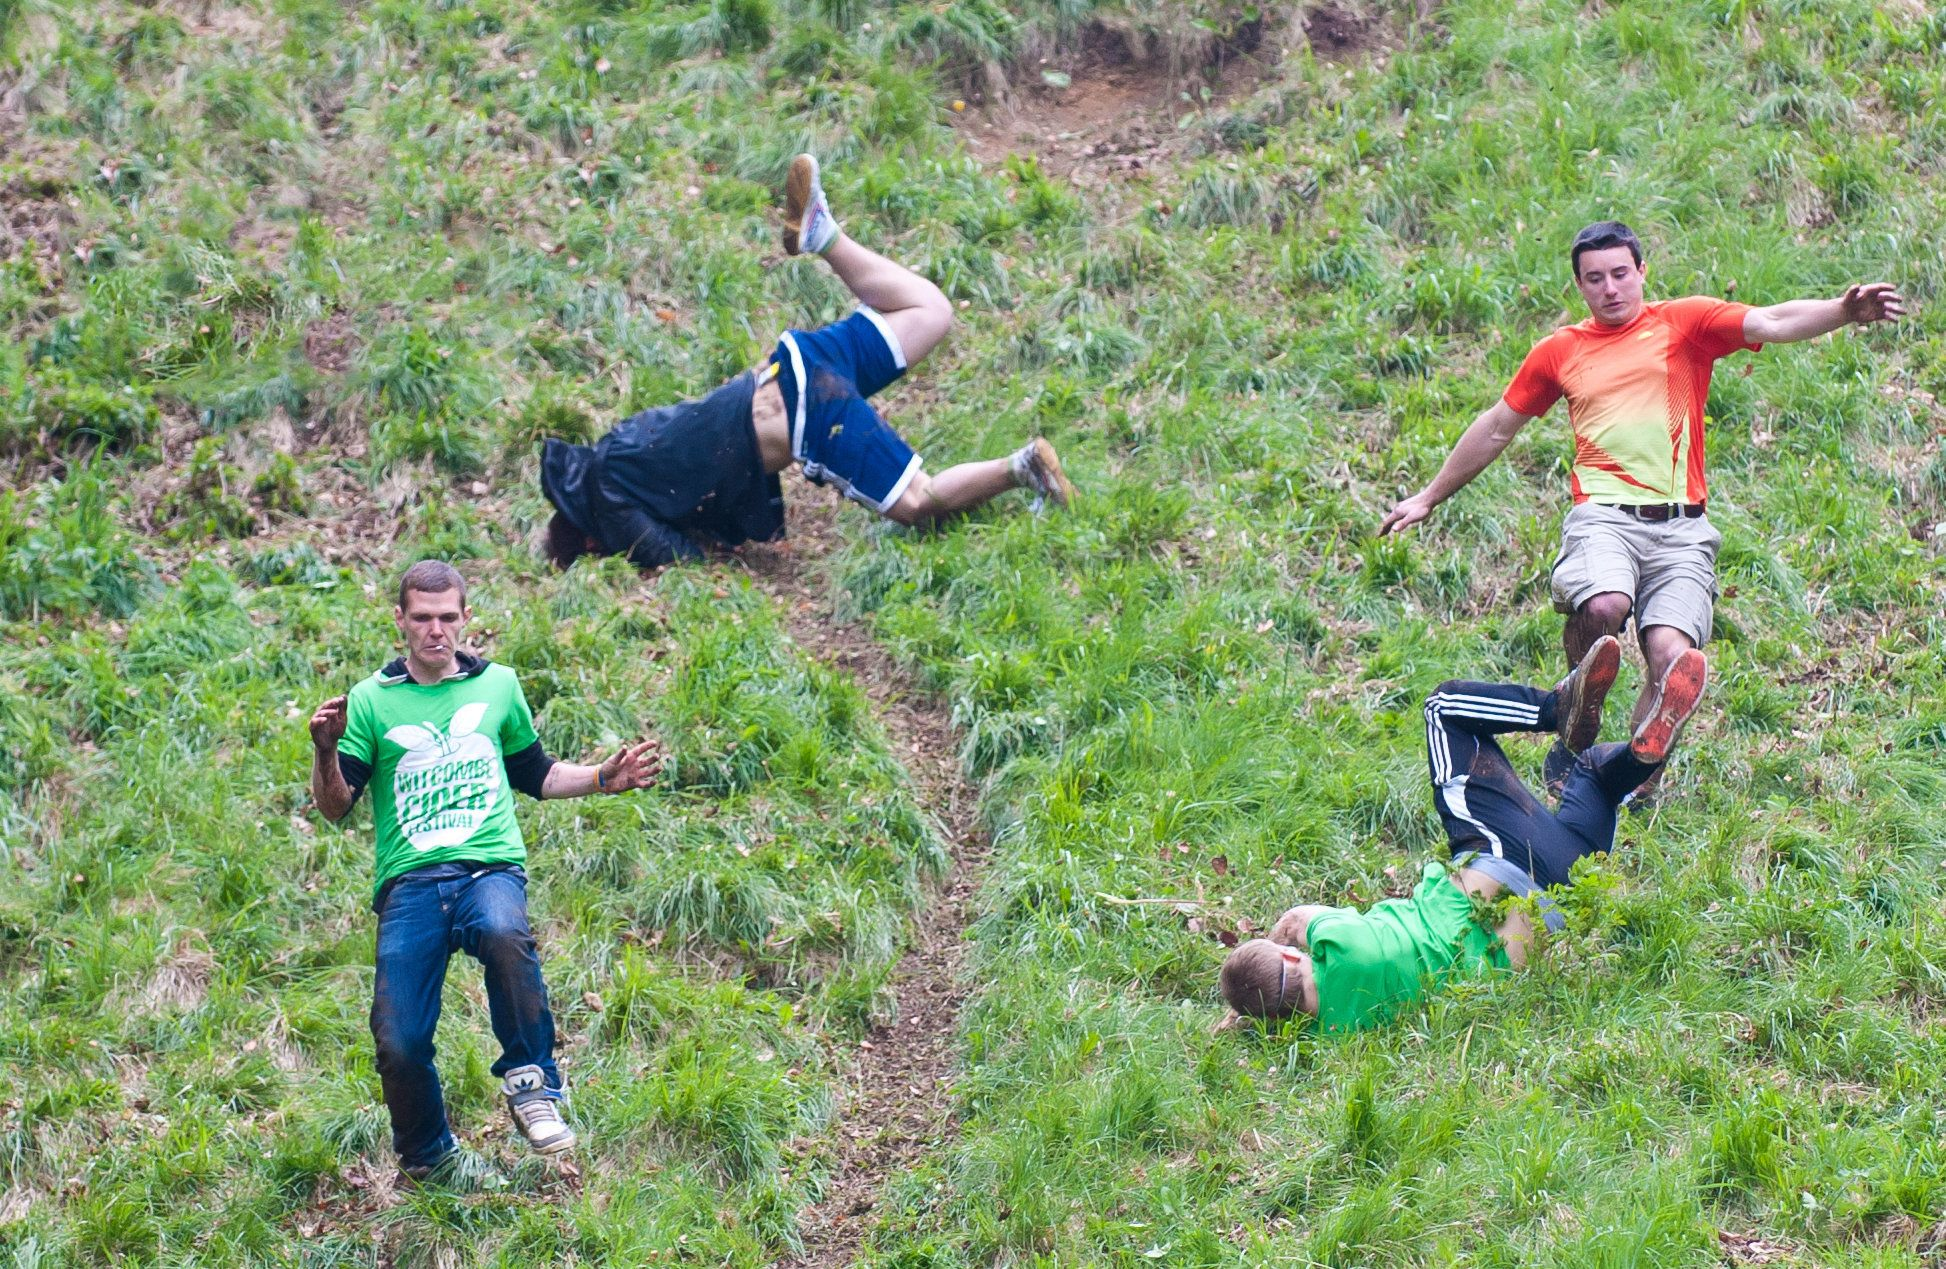 The annual Cheese Rolling Race at Coopers Hill in the village of Brockworth, involves rolling a 9 lb. round of Double Glouces